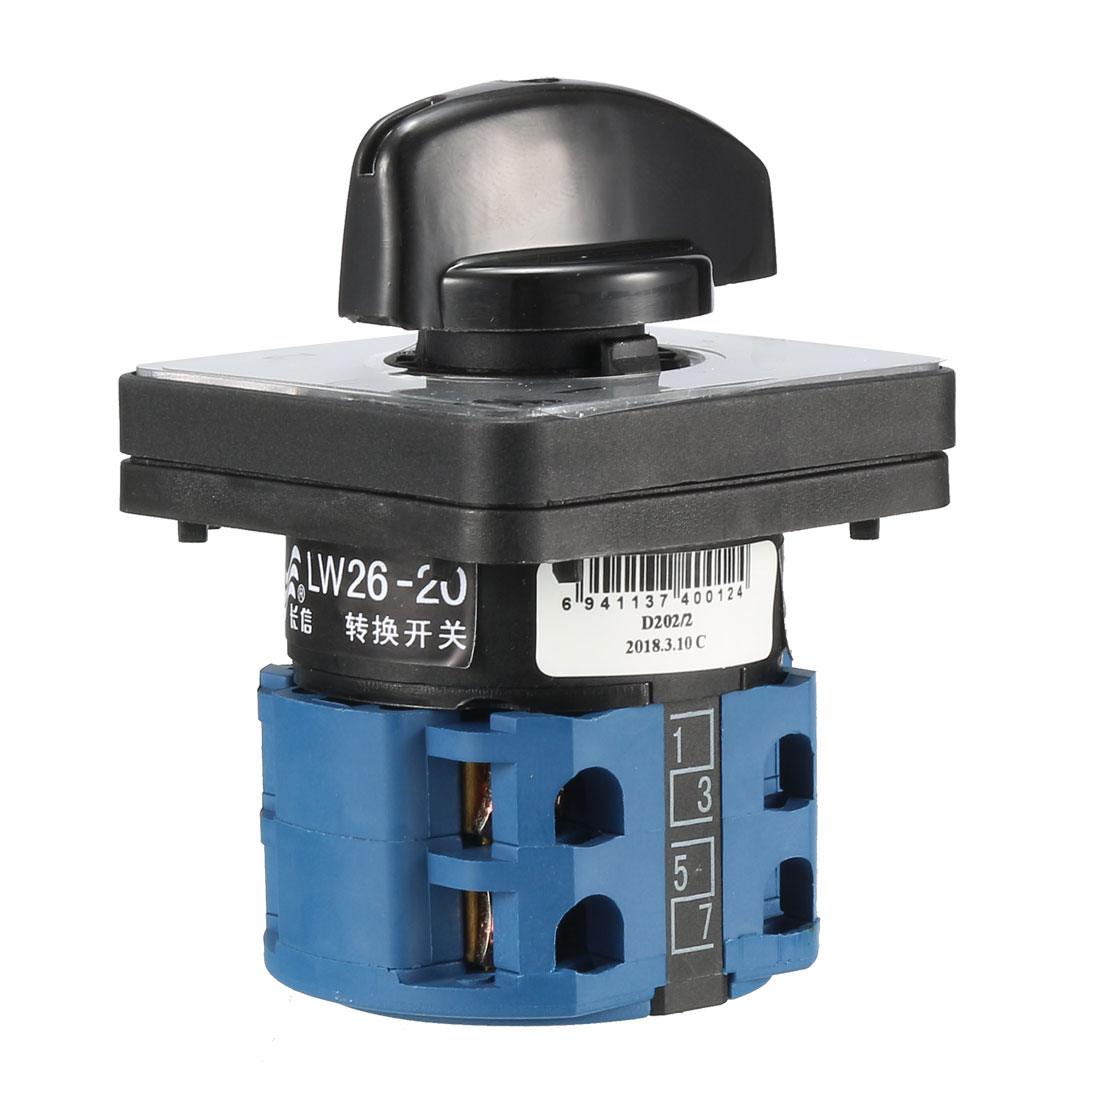 Cam Changeover Switch 3 Positions Rotary Selector Switch 12 Terminals LW26-20 - image 1 of 4